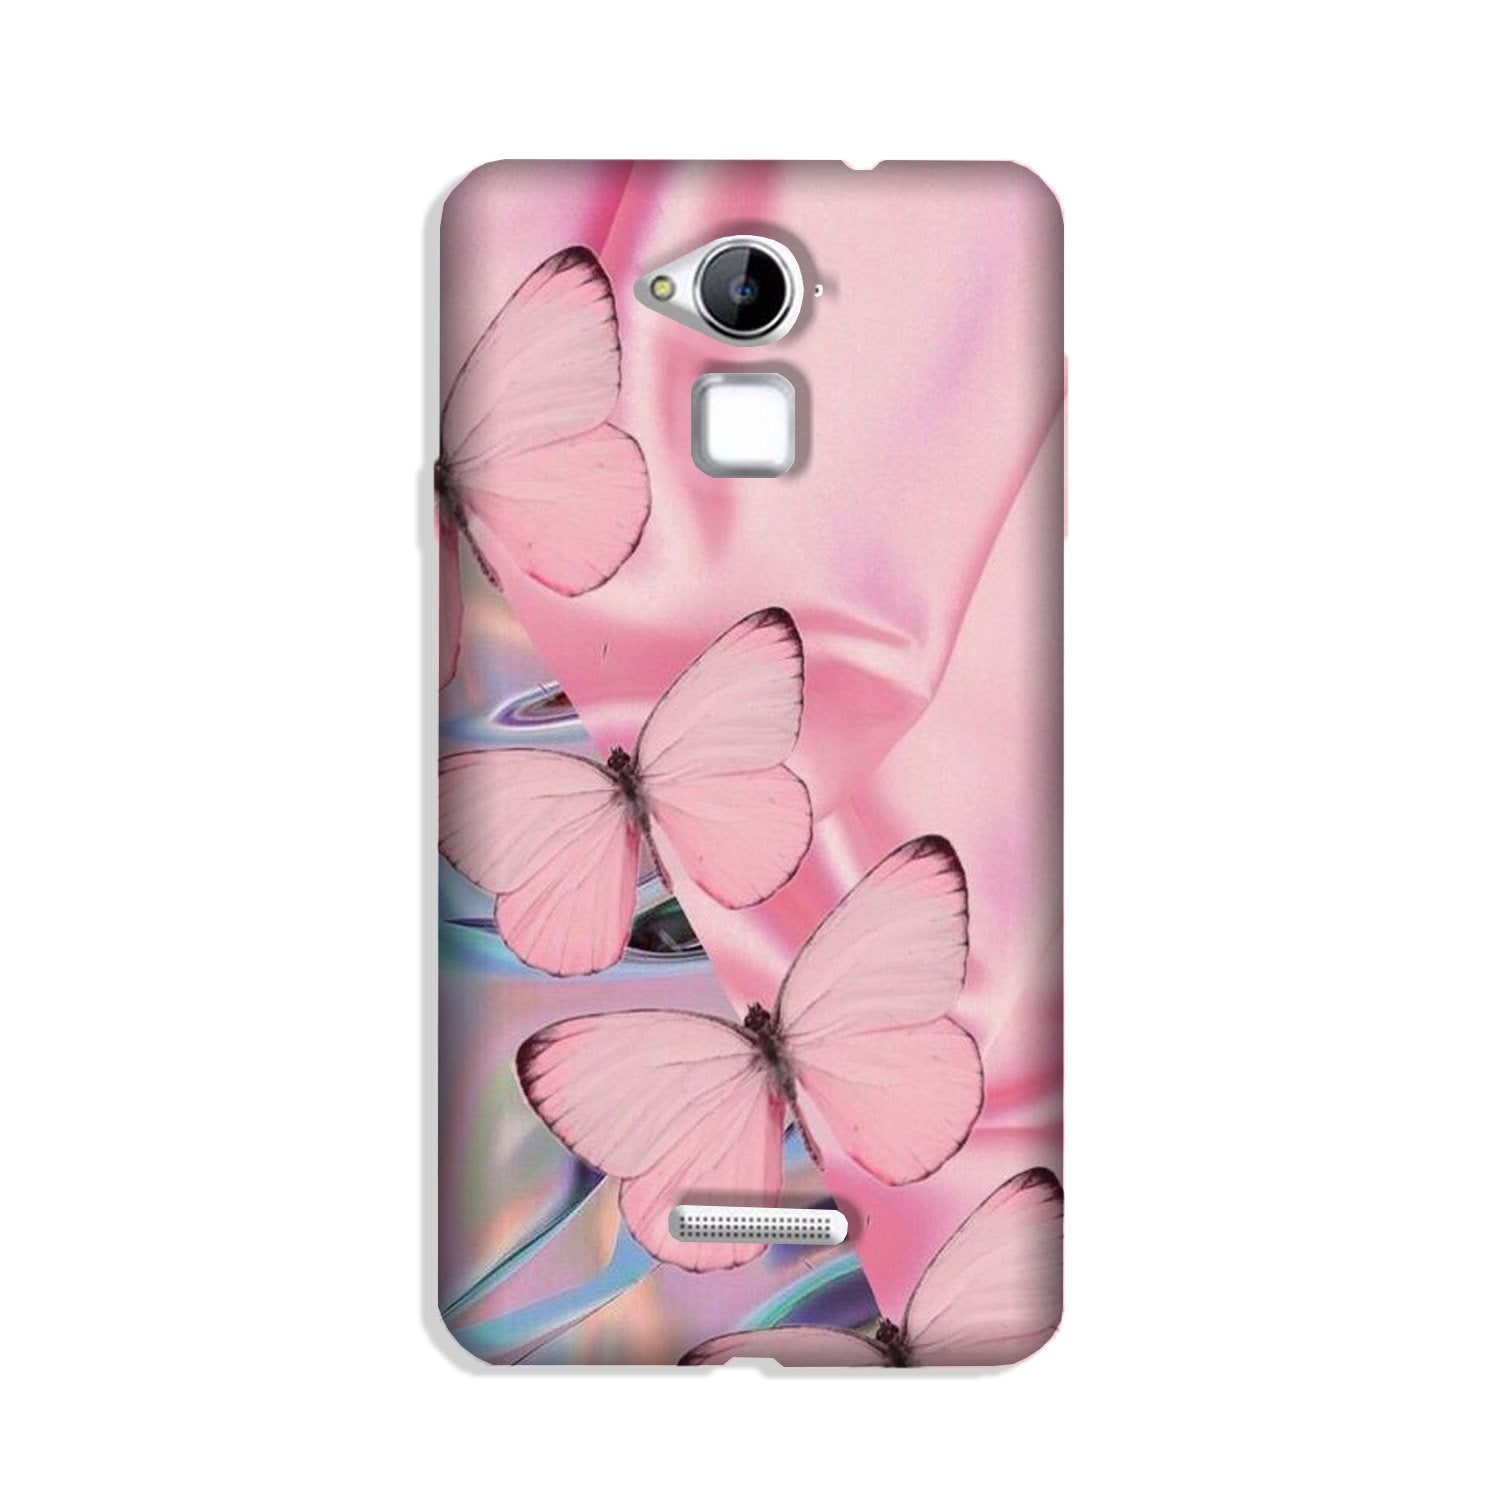 Butterflies Case for Coolpad Note 3